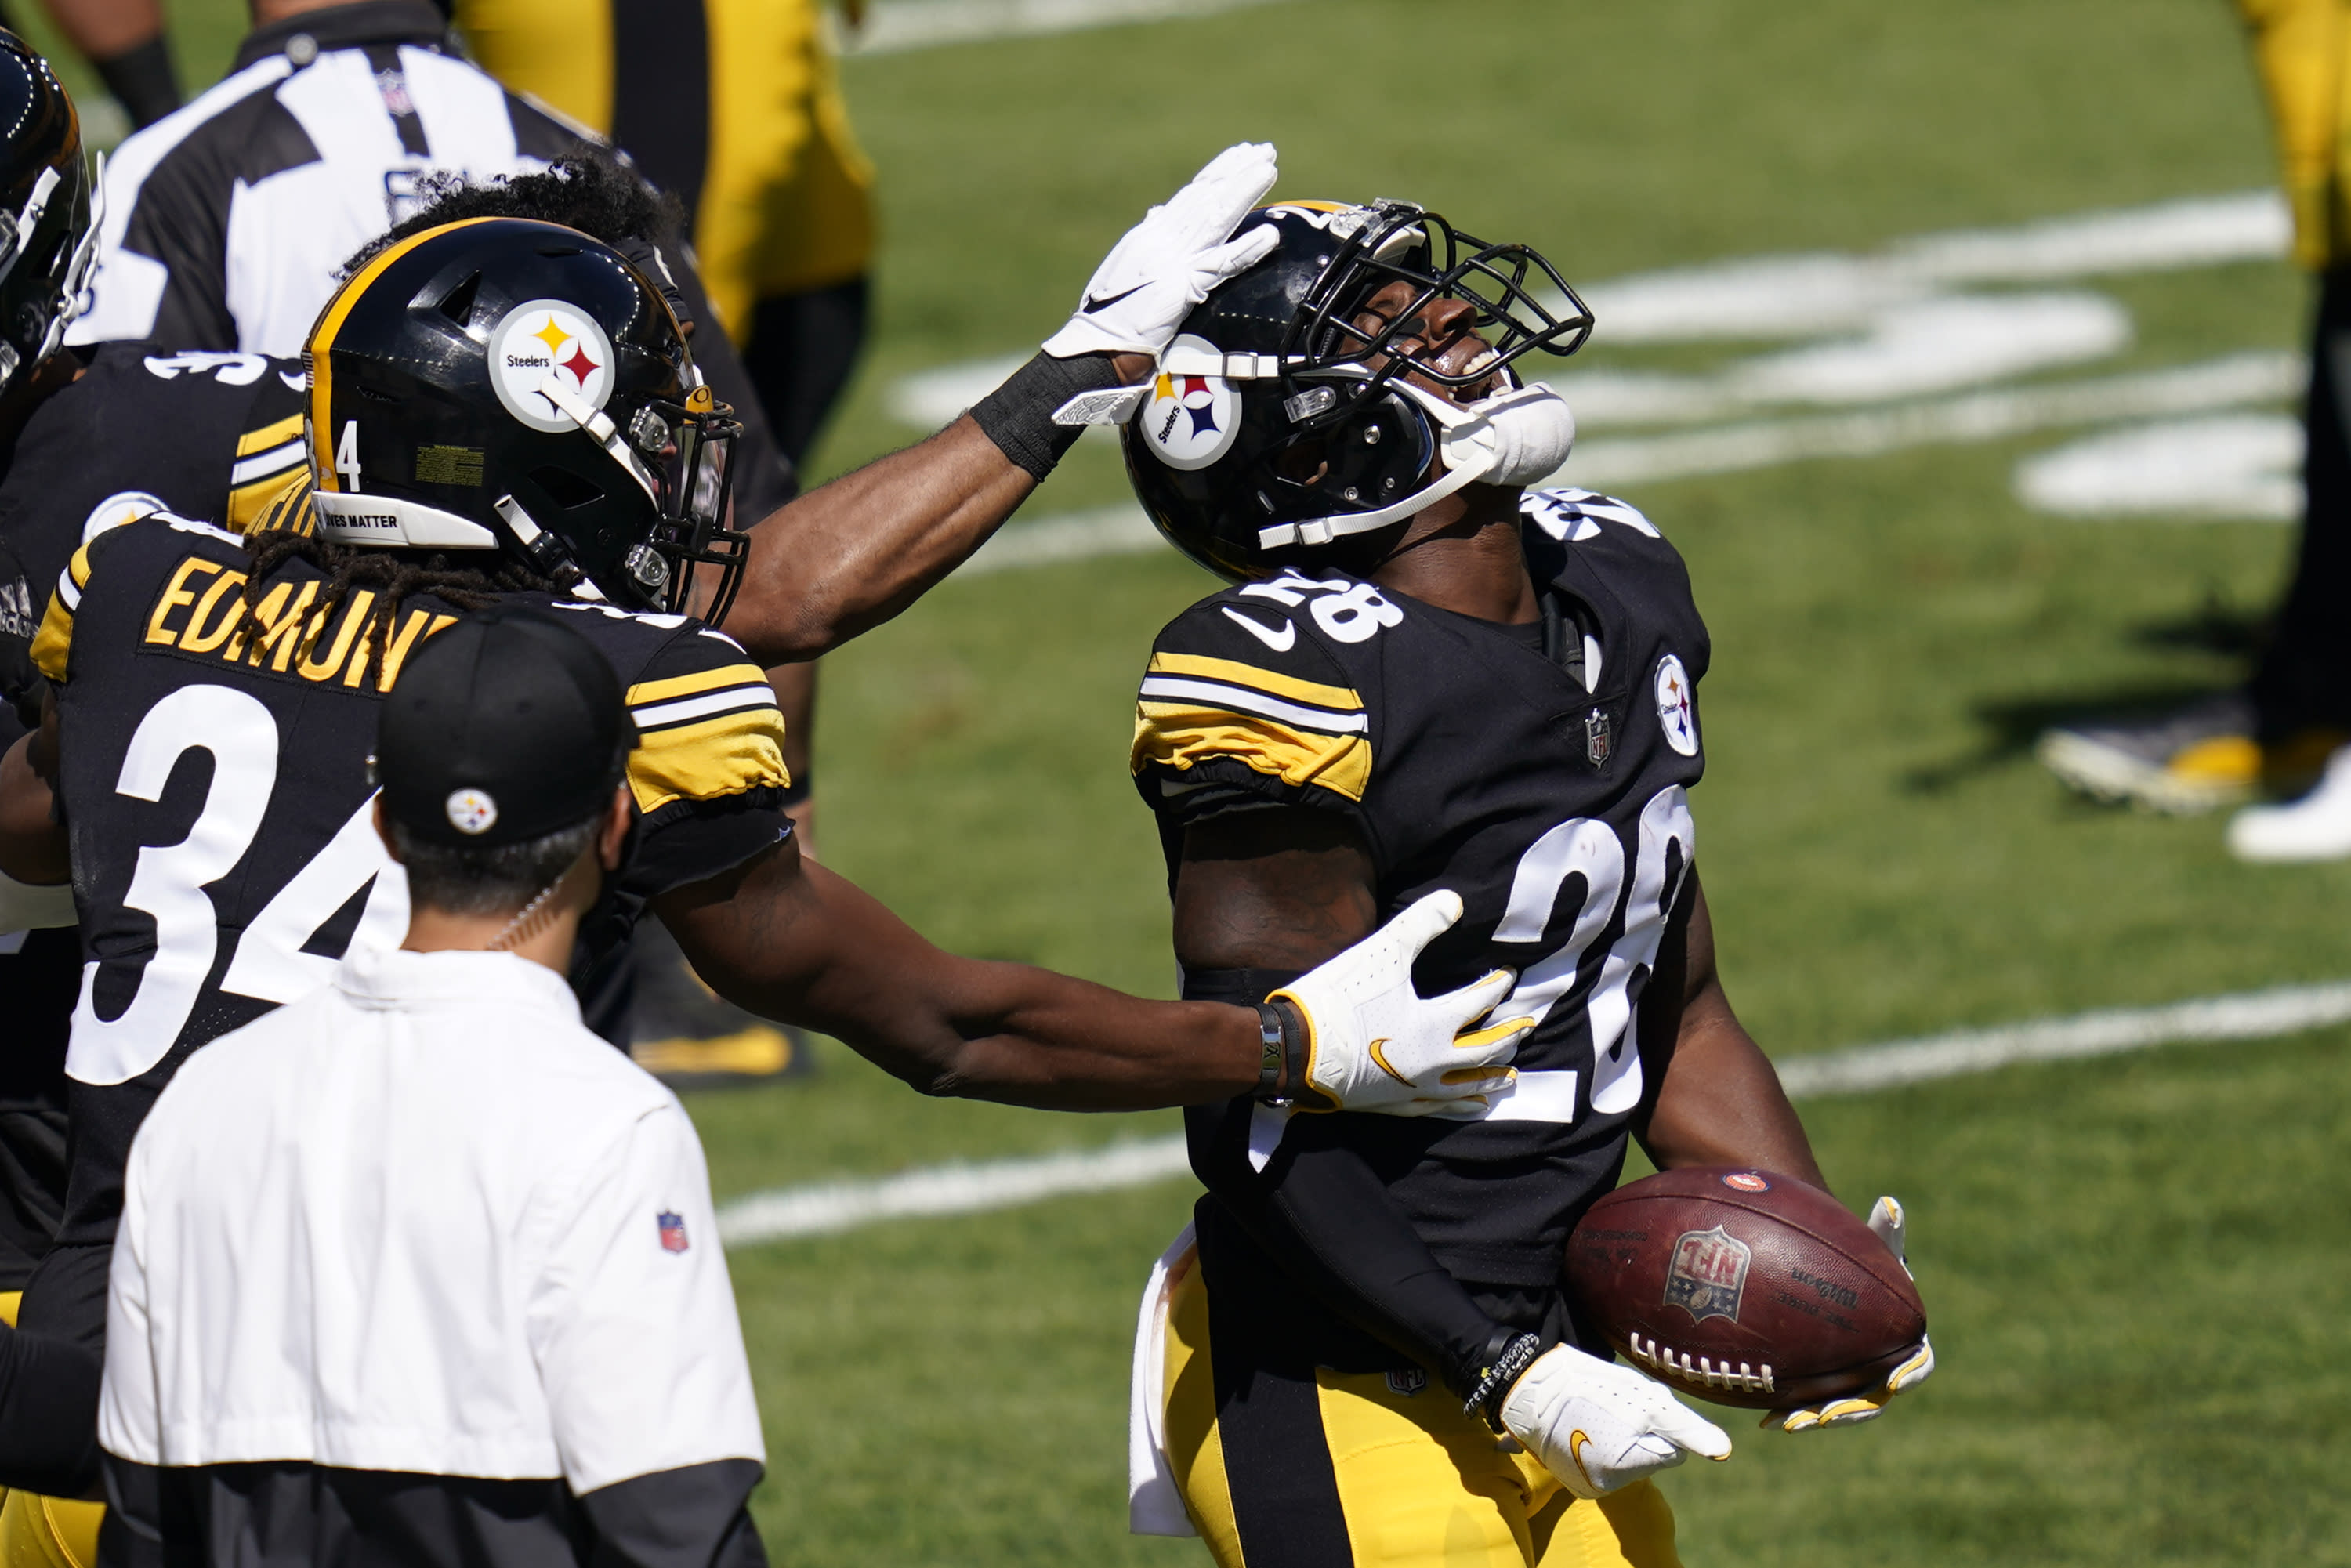 Pittsburgh Steelers cornerback Mike Hilton (28) celebrates after recovering a fumble by Denver Broncos quarterback Drew Lock (3) during the first half of an NFL football game, Sunday, Sept. 20, 2020, in Pittsburgh. (AP Photo/Keith Srakocic)